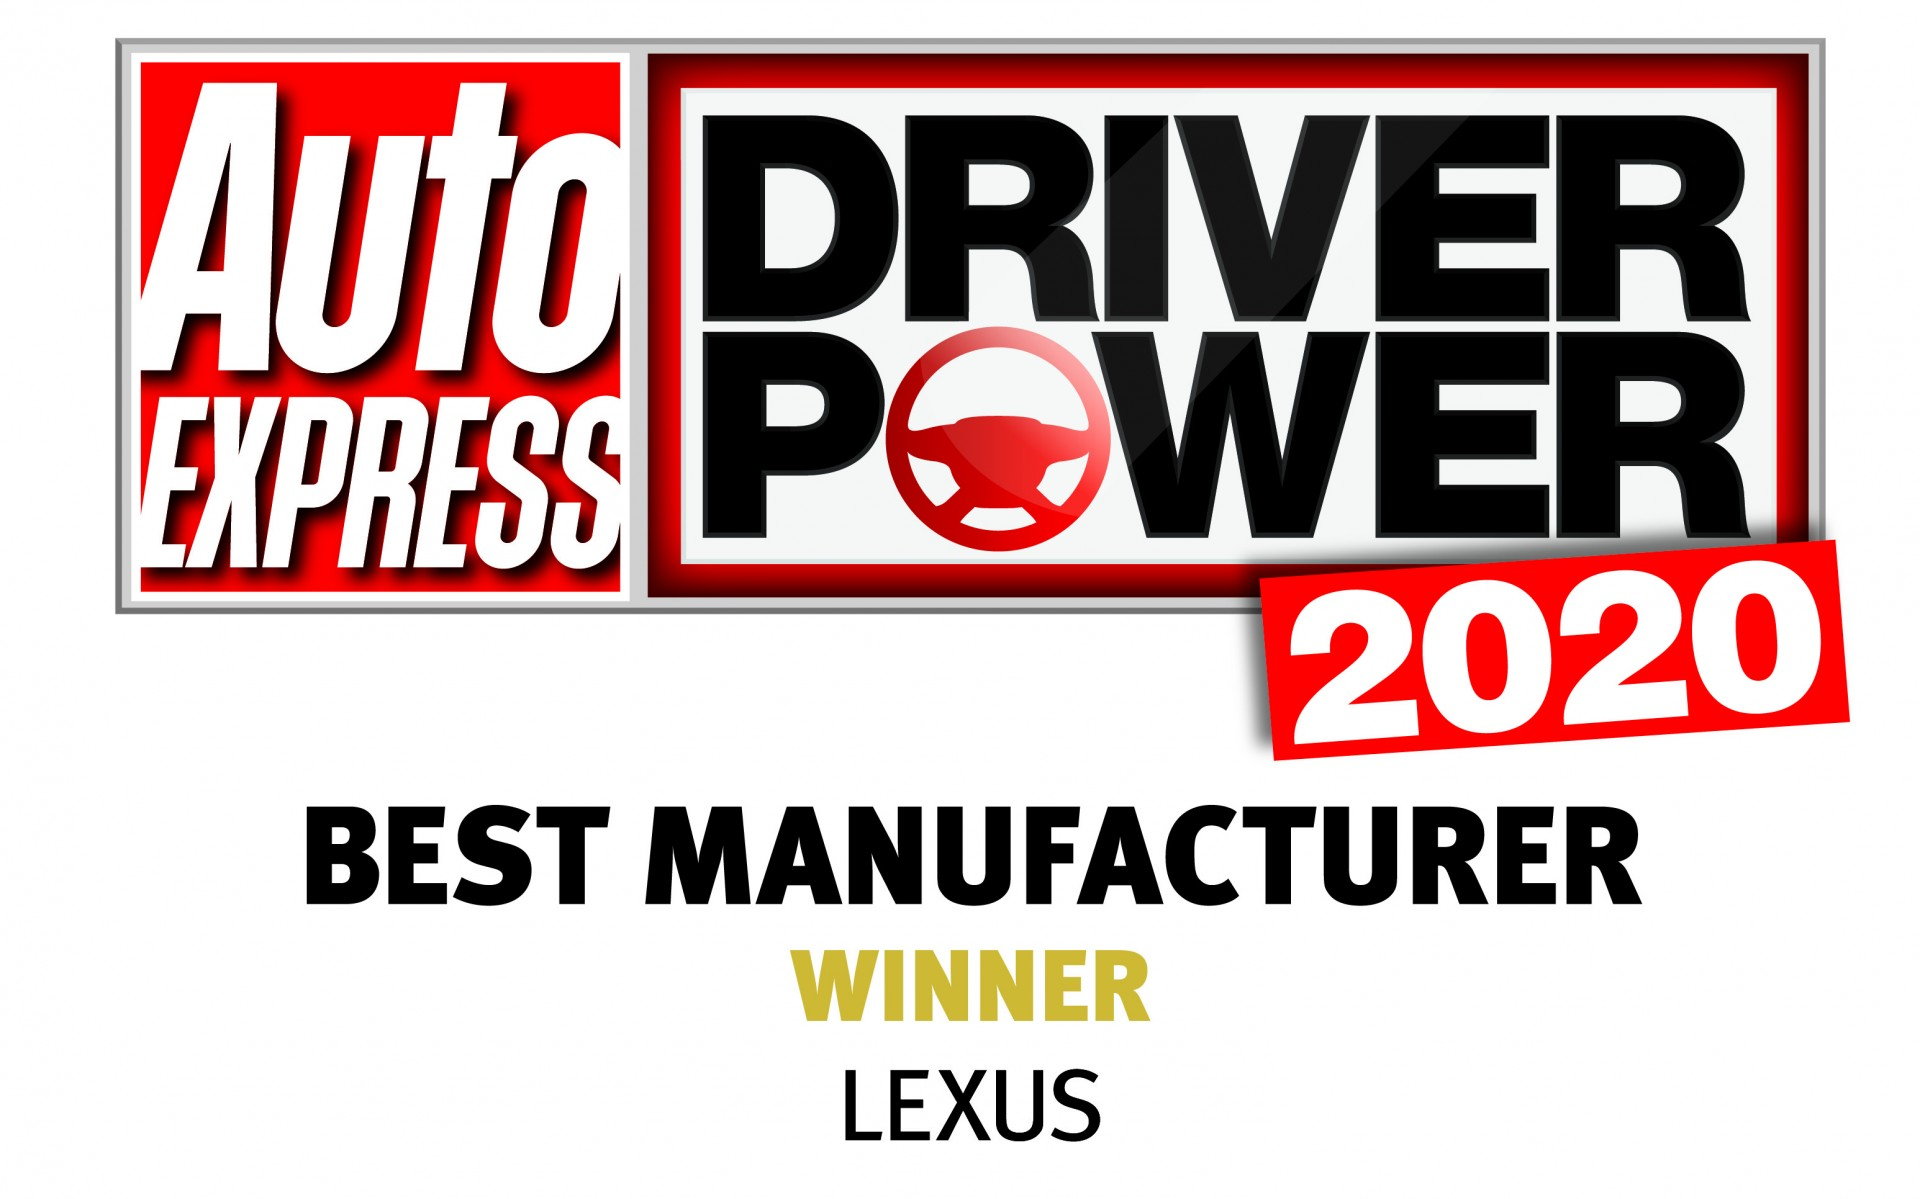 Driver_Power_SDT-467_Winner-Logos_2020__Best-Manufacturer-004